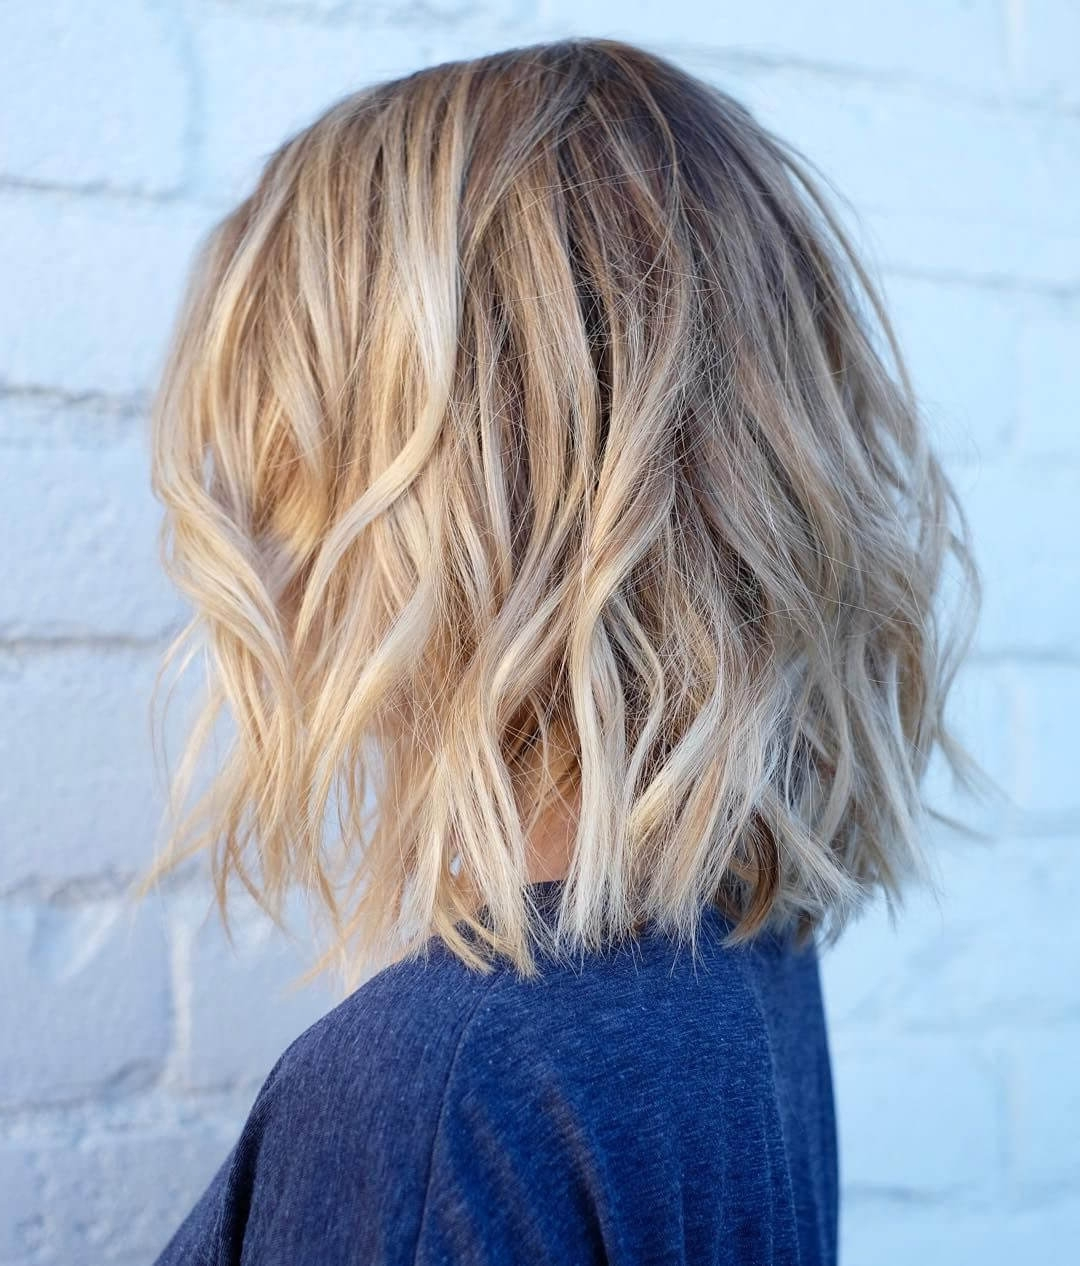 Most Popular Short Blonde Bob Hairstyles With Layers Regarding 50 Fresh Short Blonde Hair Ideas To Update Your Style In (View 13 of 20)